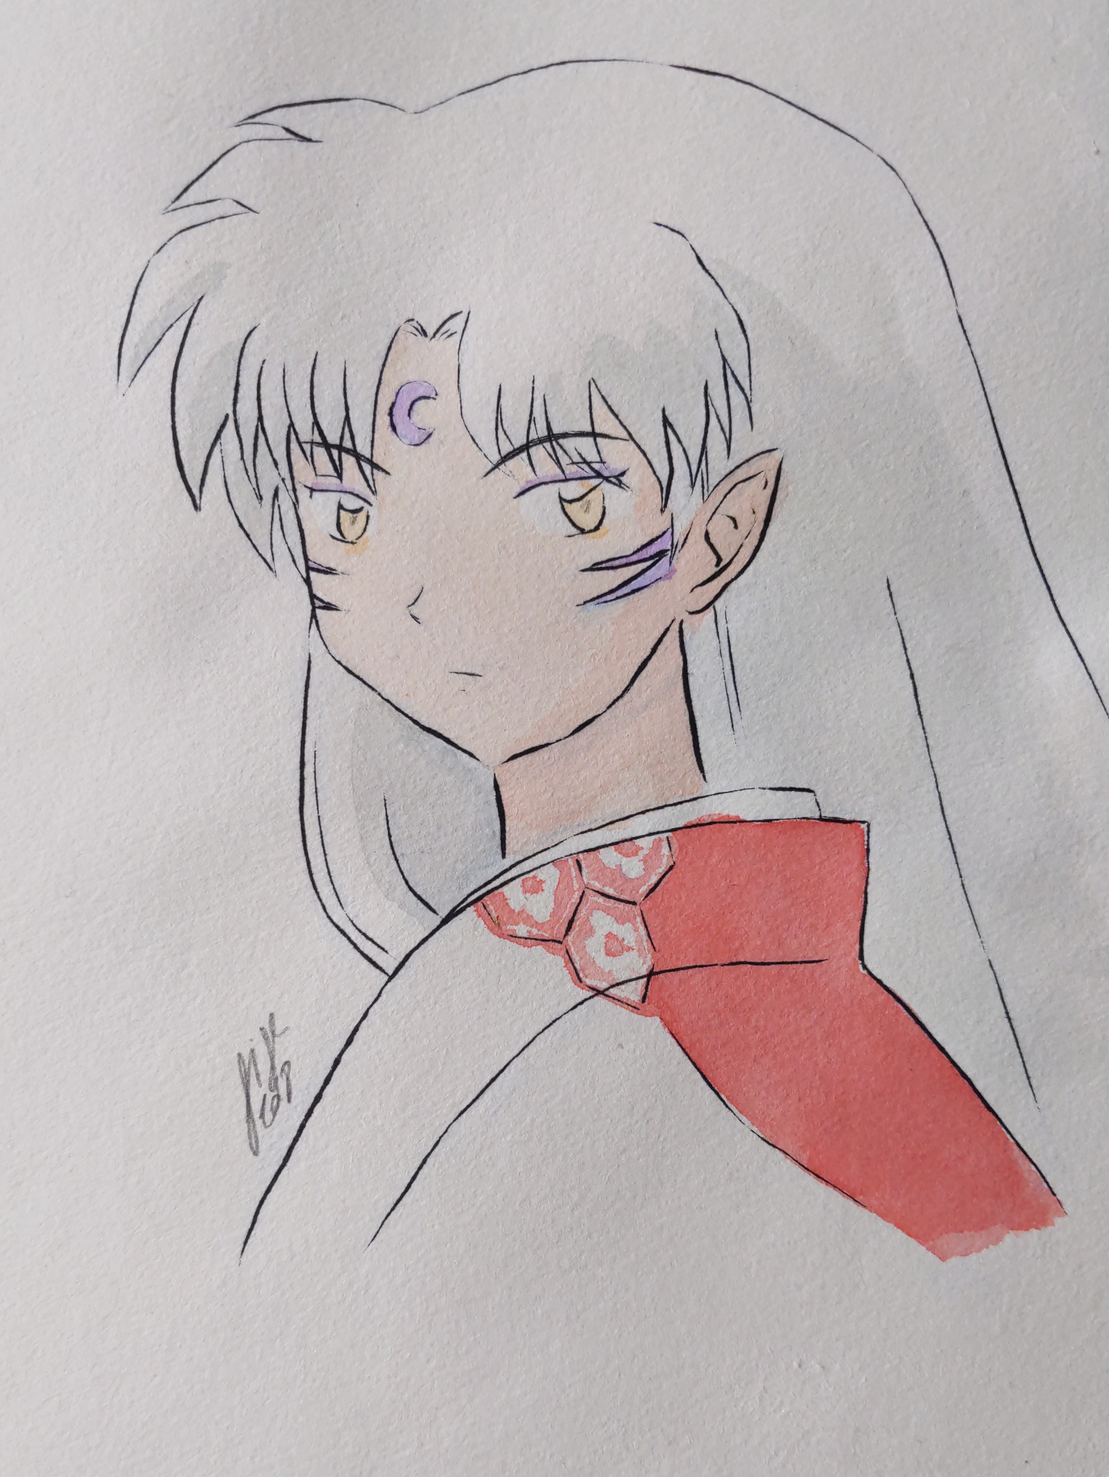 traditional artwork of Sesshomaru from Inu Yasha, guy with long white hair, pointed ears, a purple half moon on his forehead and two purple stripes on his cheek